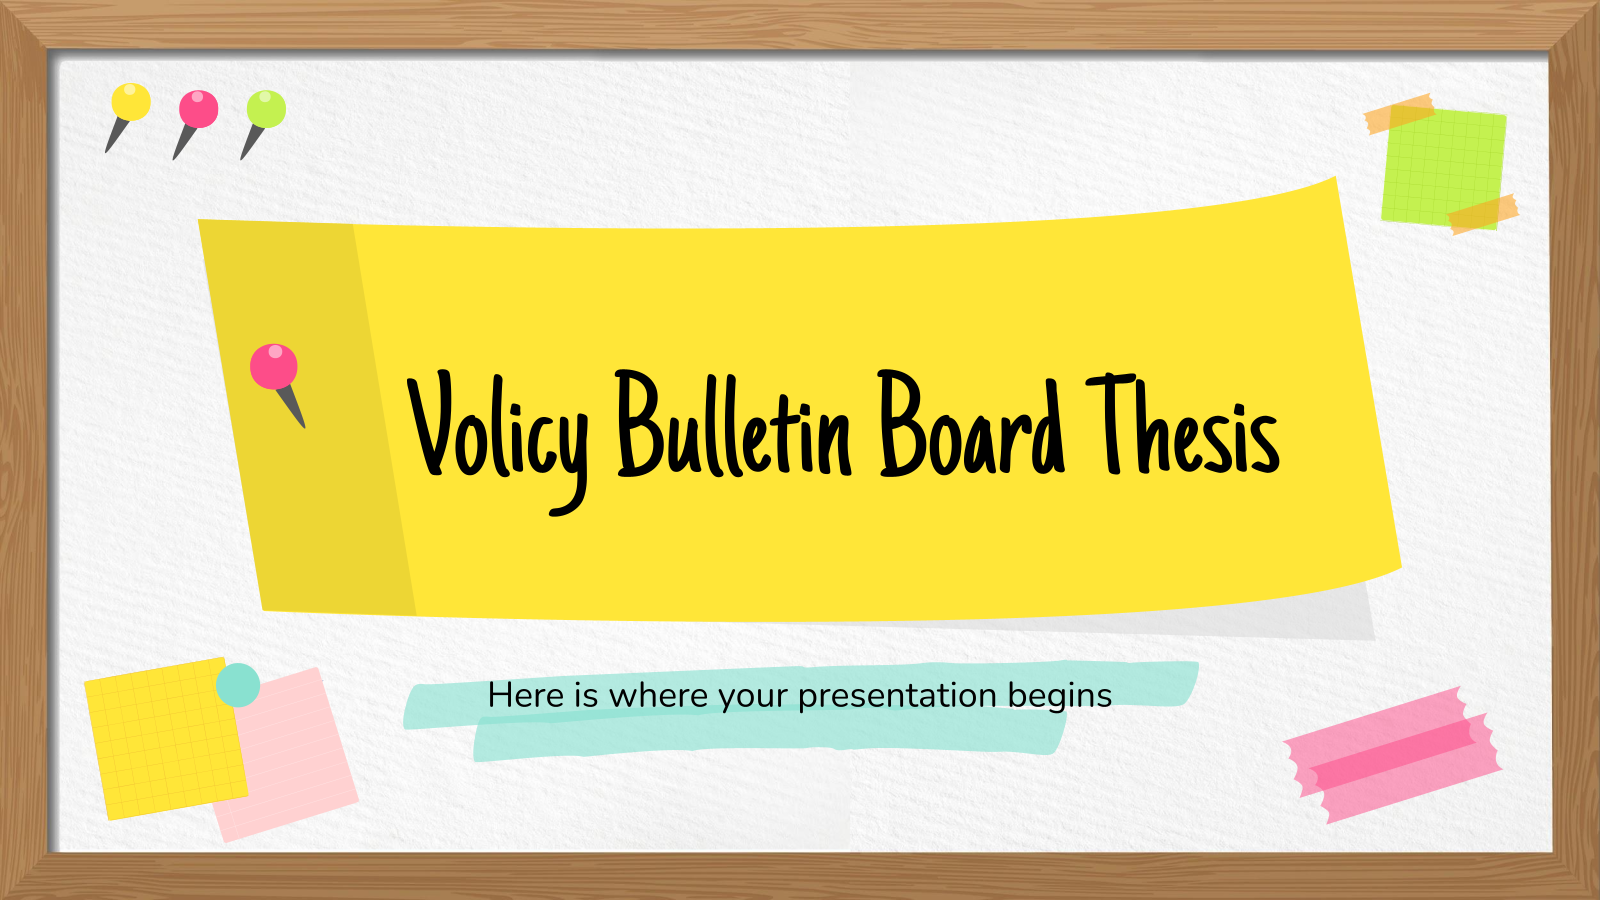 Volicy Bulletin Board Thesis presentation template